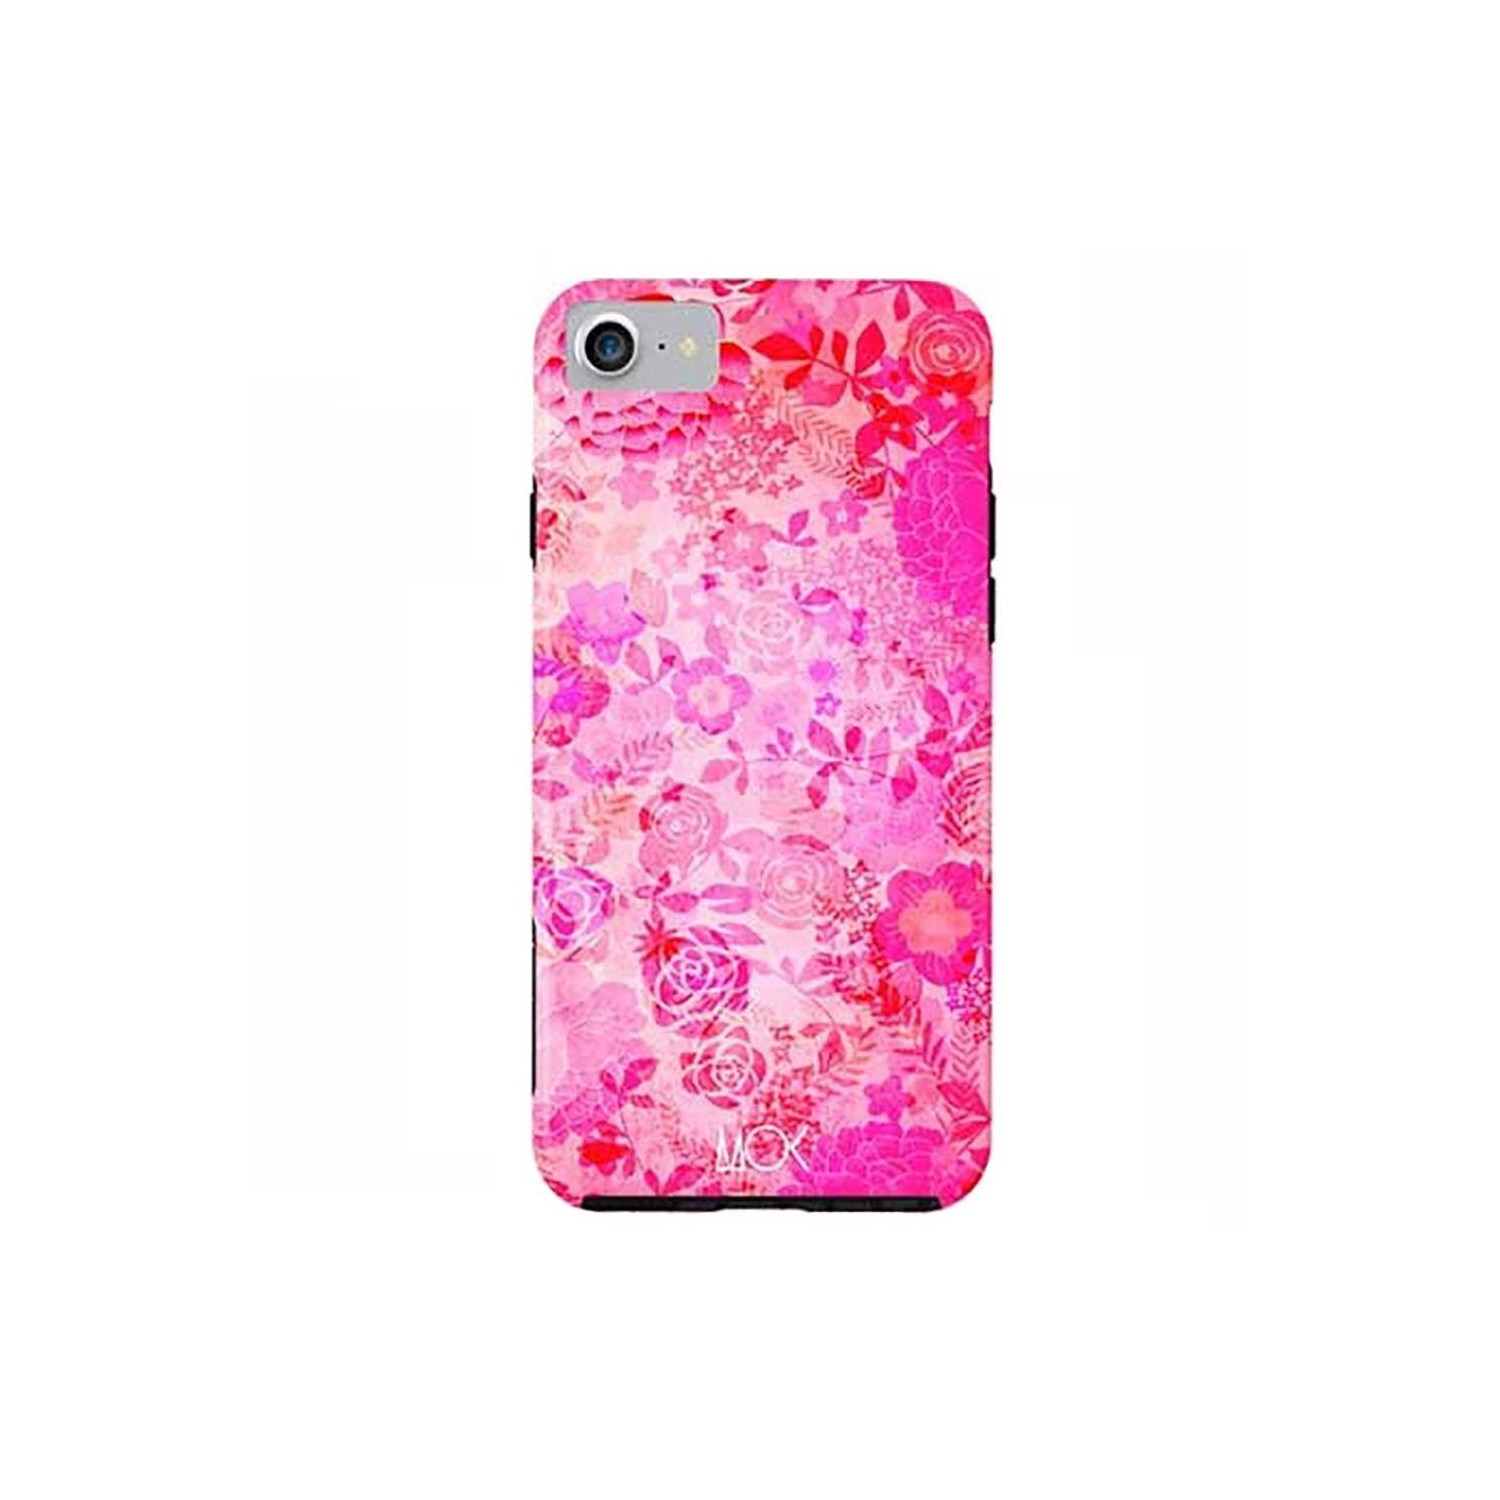 Case -  ArtsCase StrongFit for iPhone 7 Rose Floral by MOK